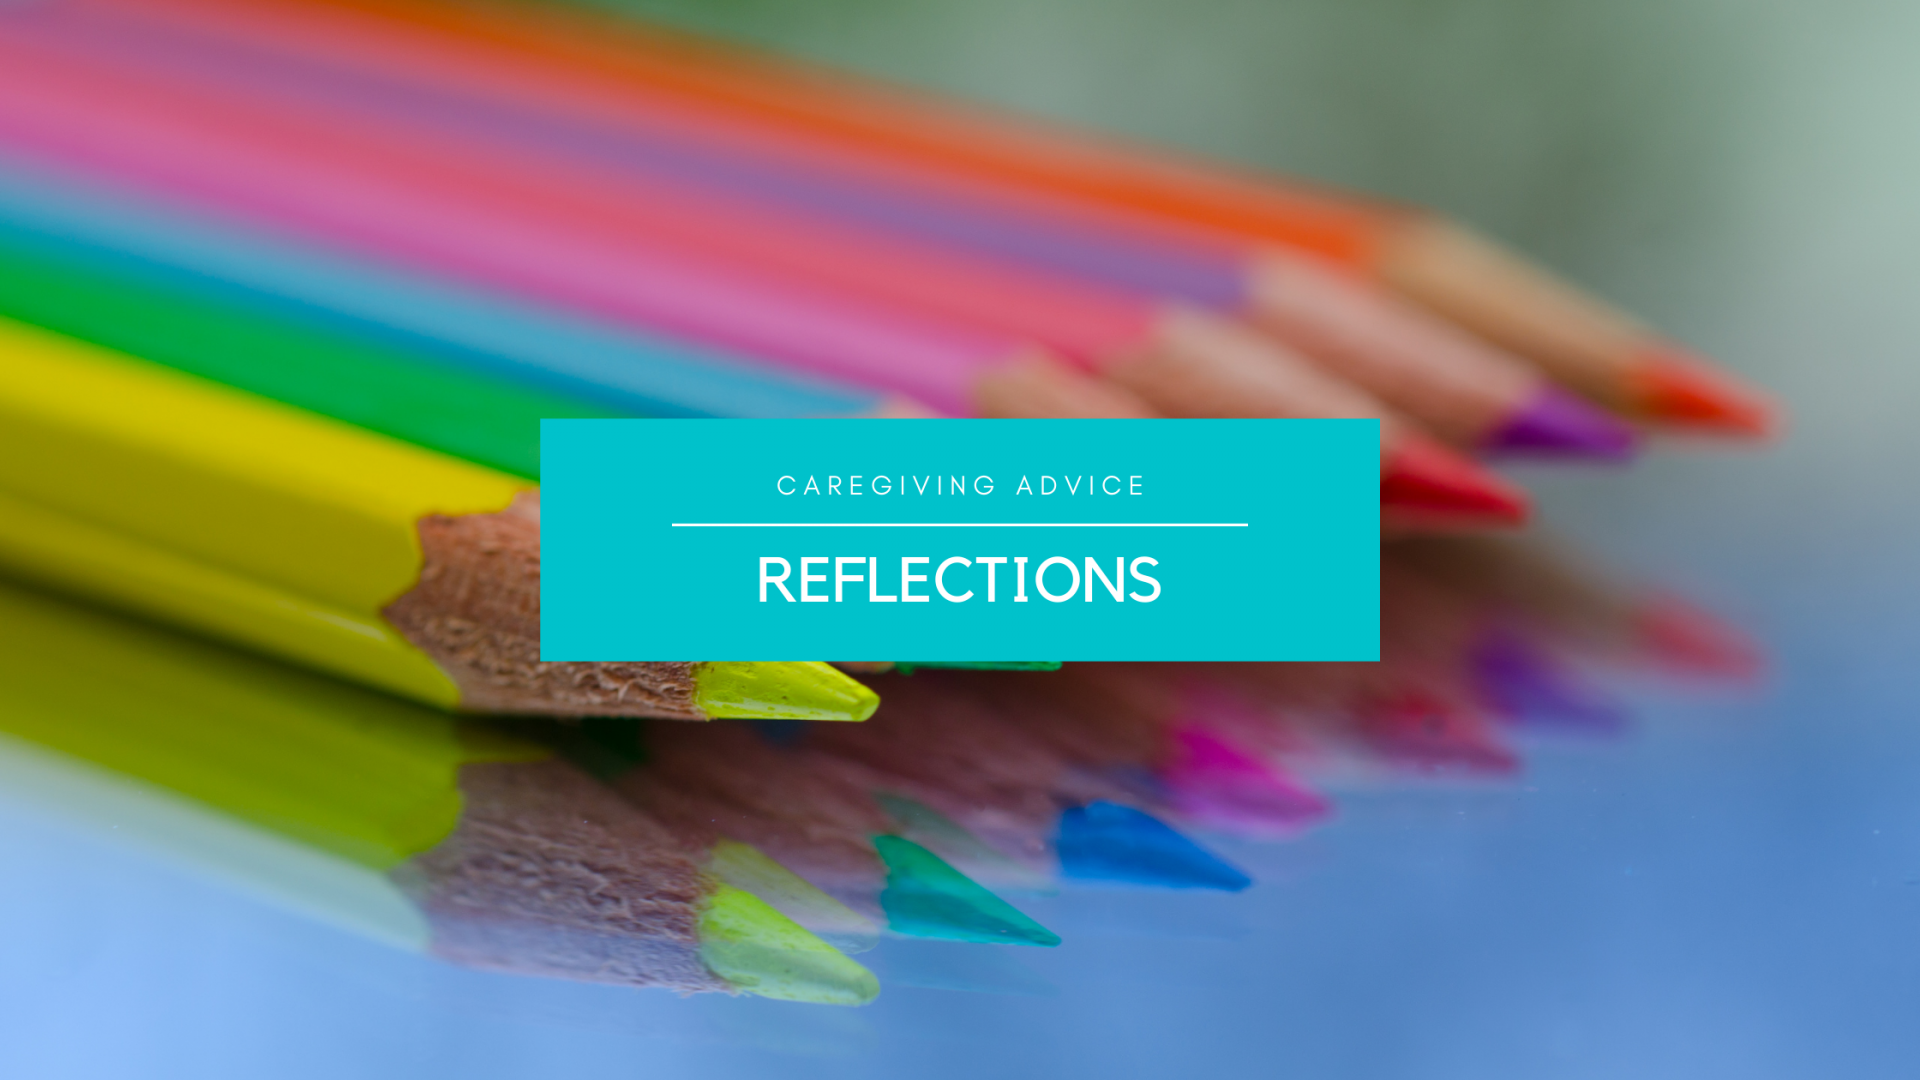 image of brightly colored pencils on reflective surface